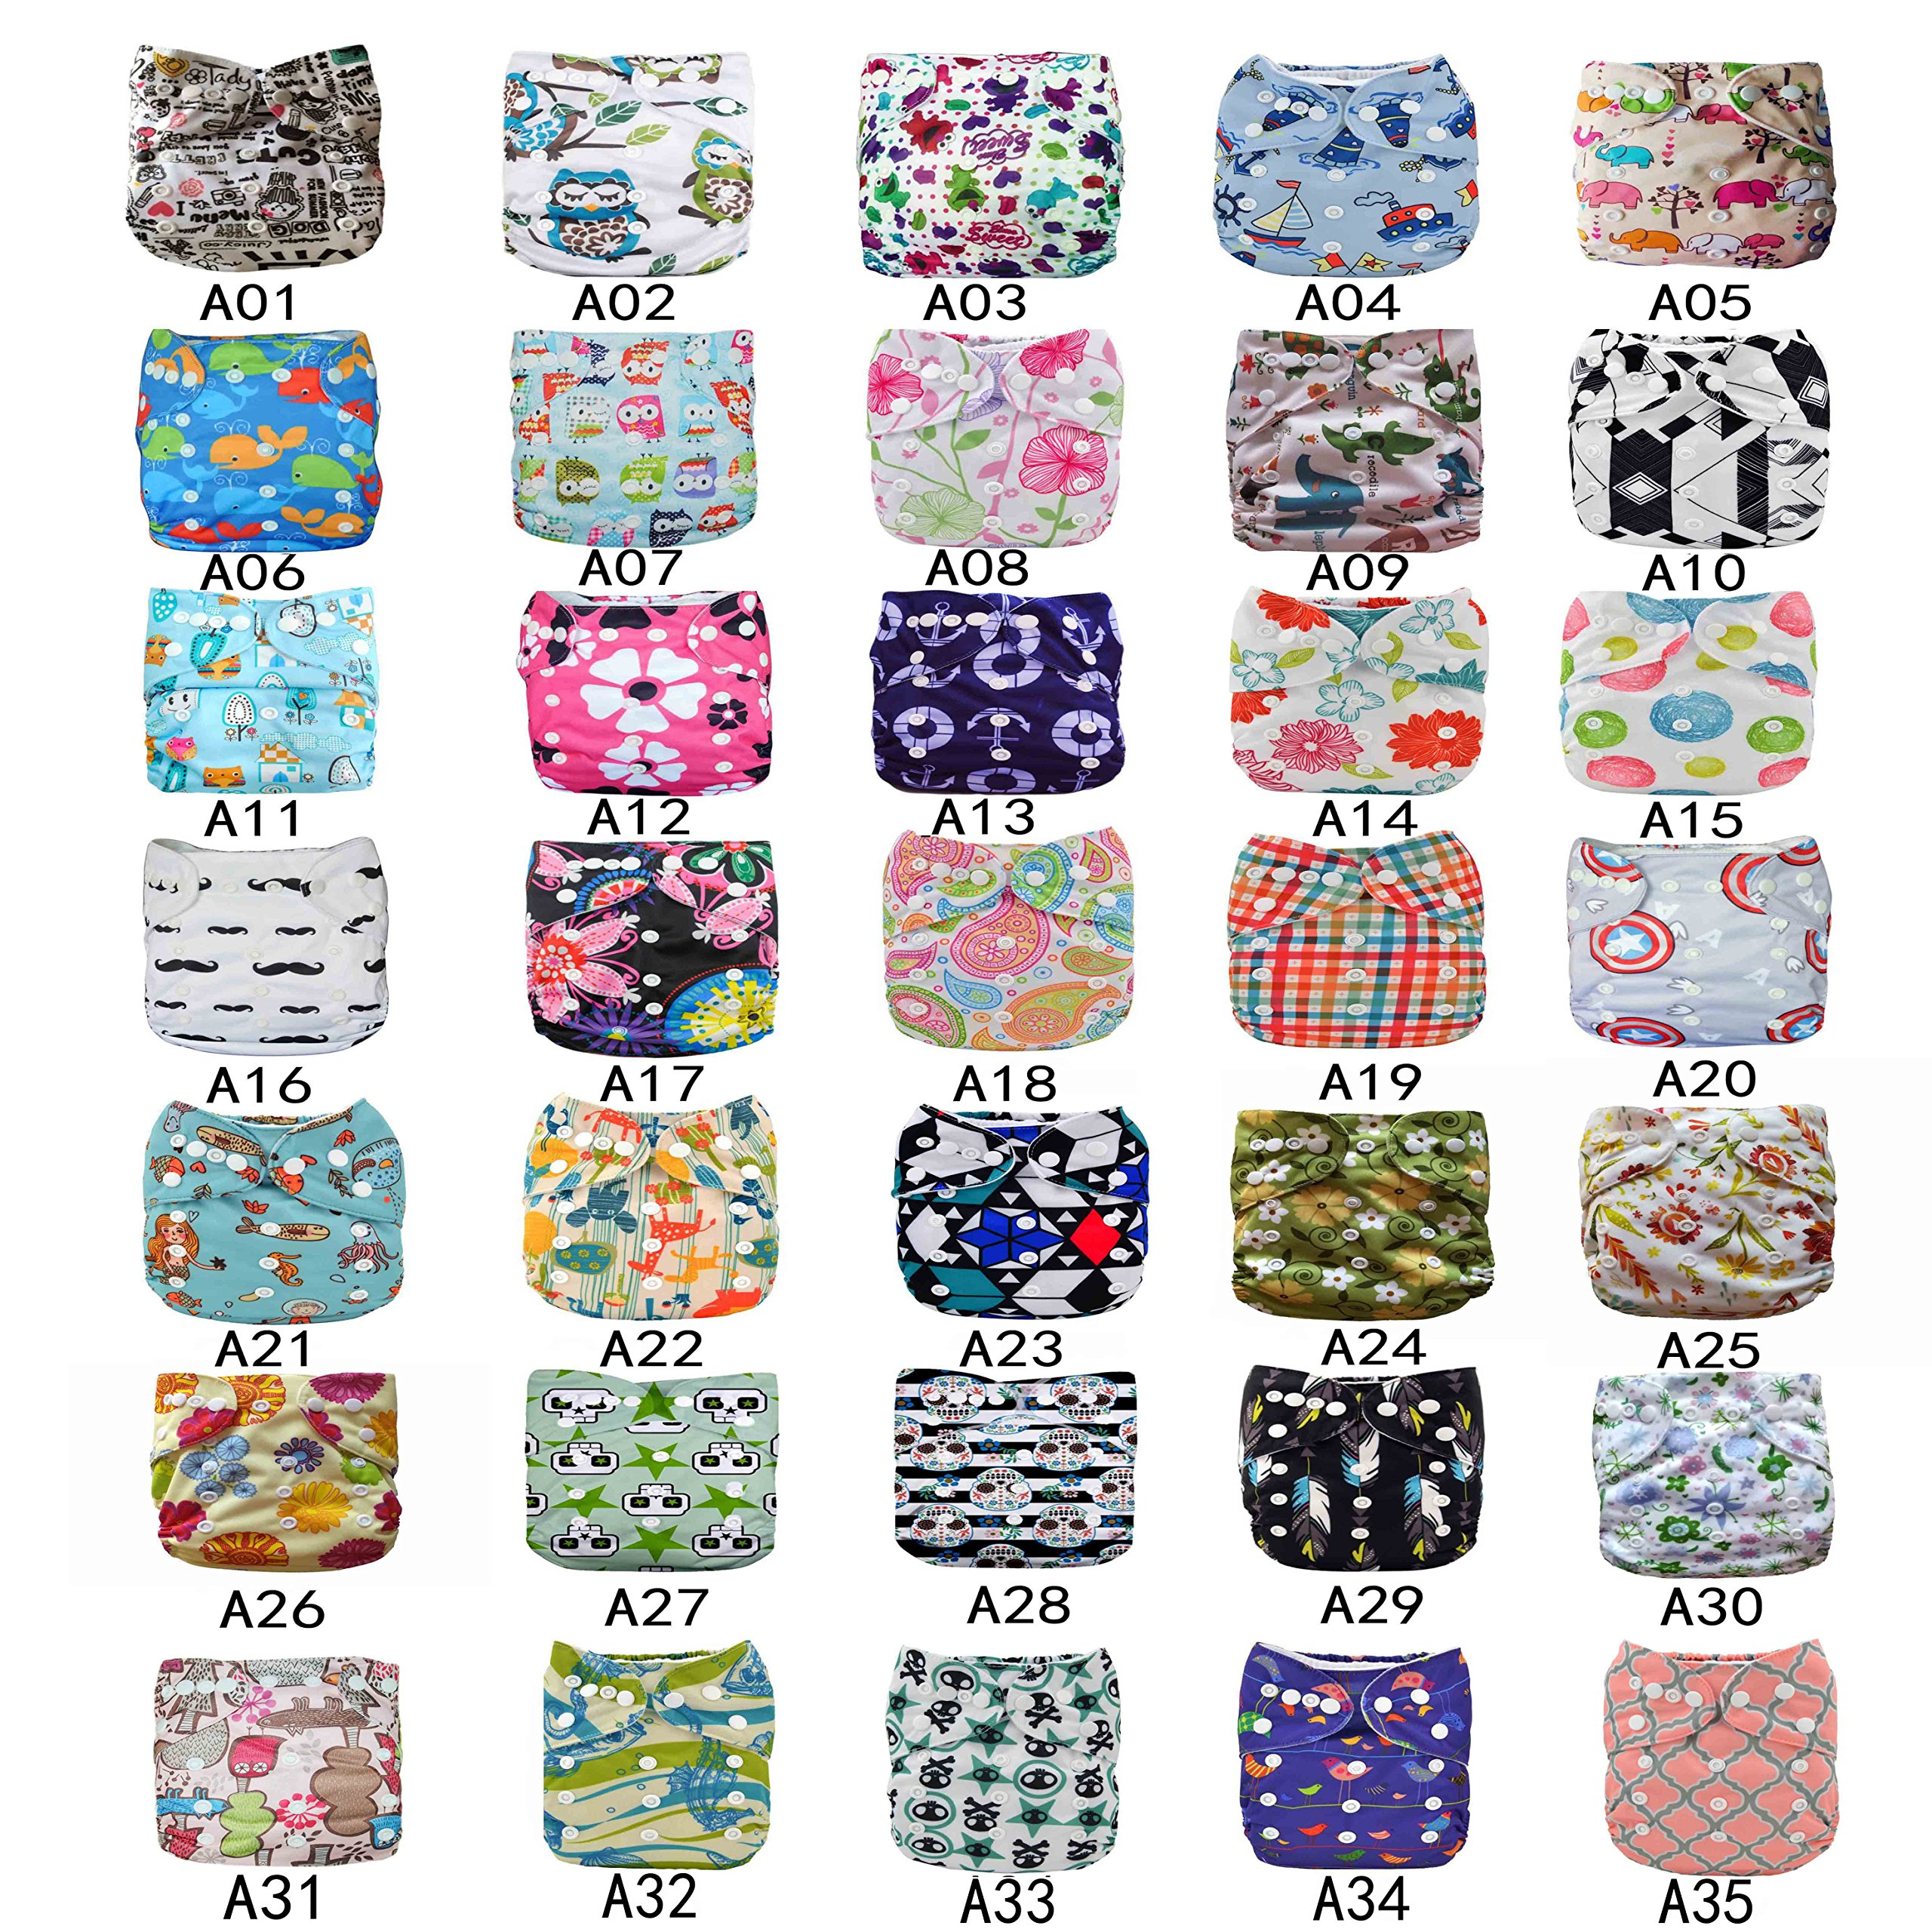 LilBit U Pick Reusable Baby Cloth Diaper(Please email us the color you want ) (with bamboo charcoal inserts, 15 diapers + 15 inserts)